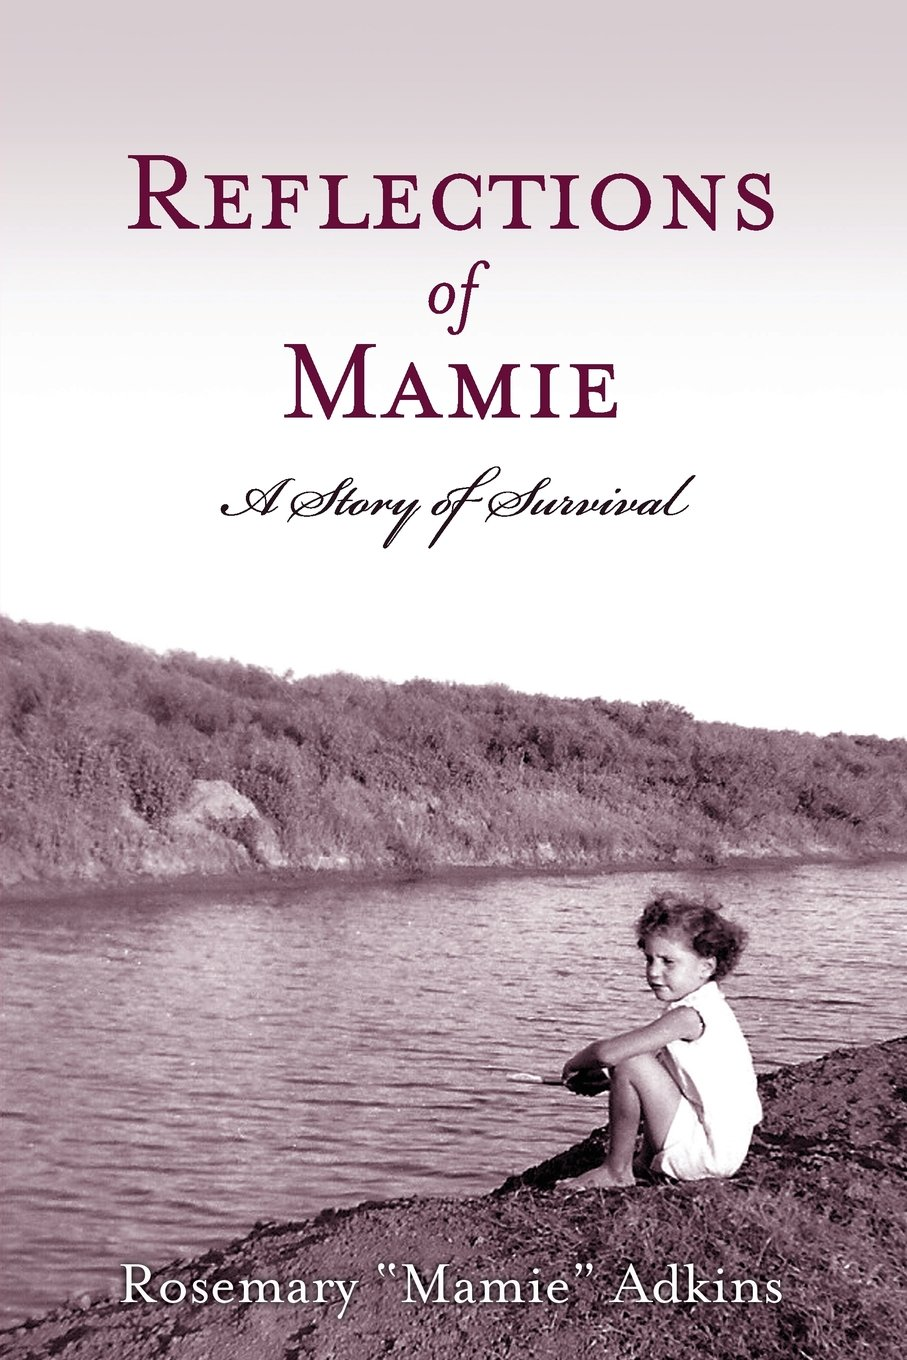 Reflections-of-Mamie: A Story of Survival by Rosemary